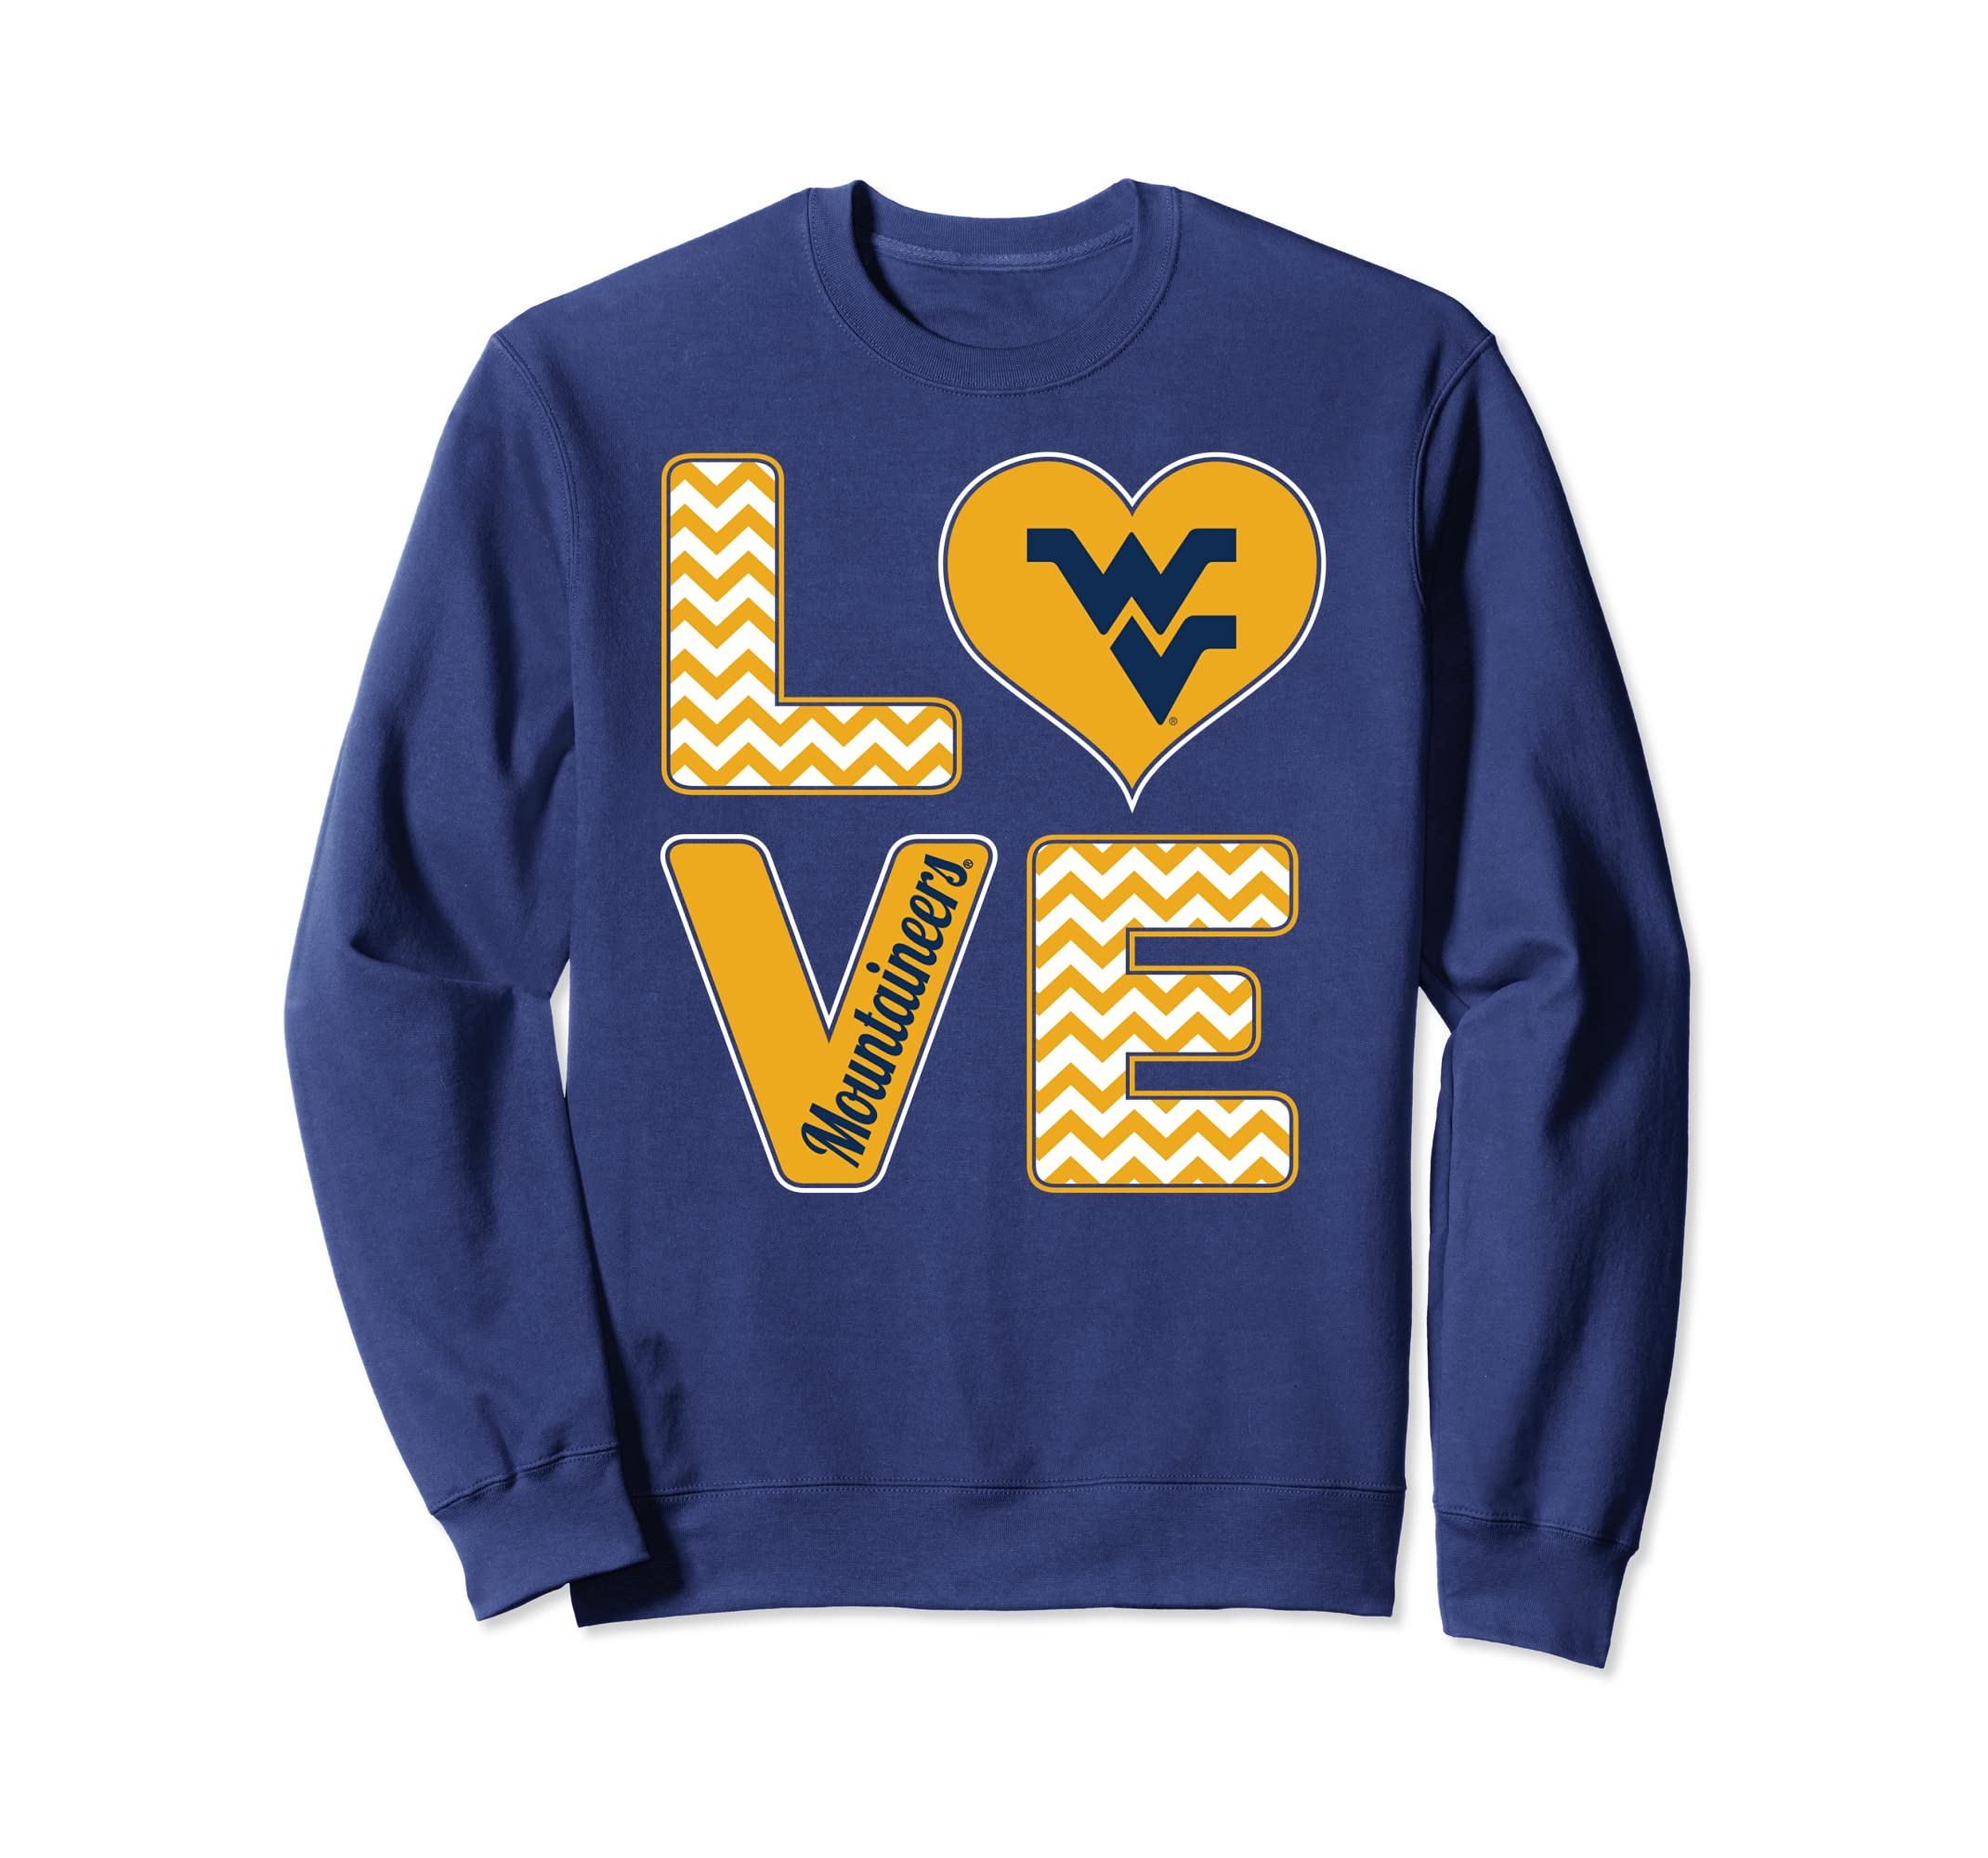 West Virginia Mountaineers Stacked Love Sweatshirt - Apparel-SFL